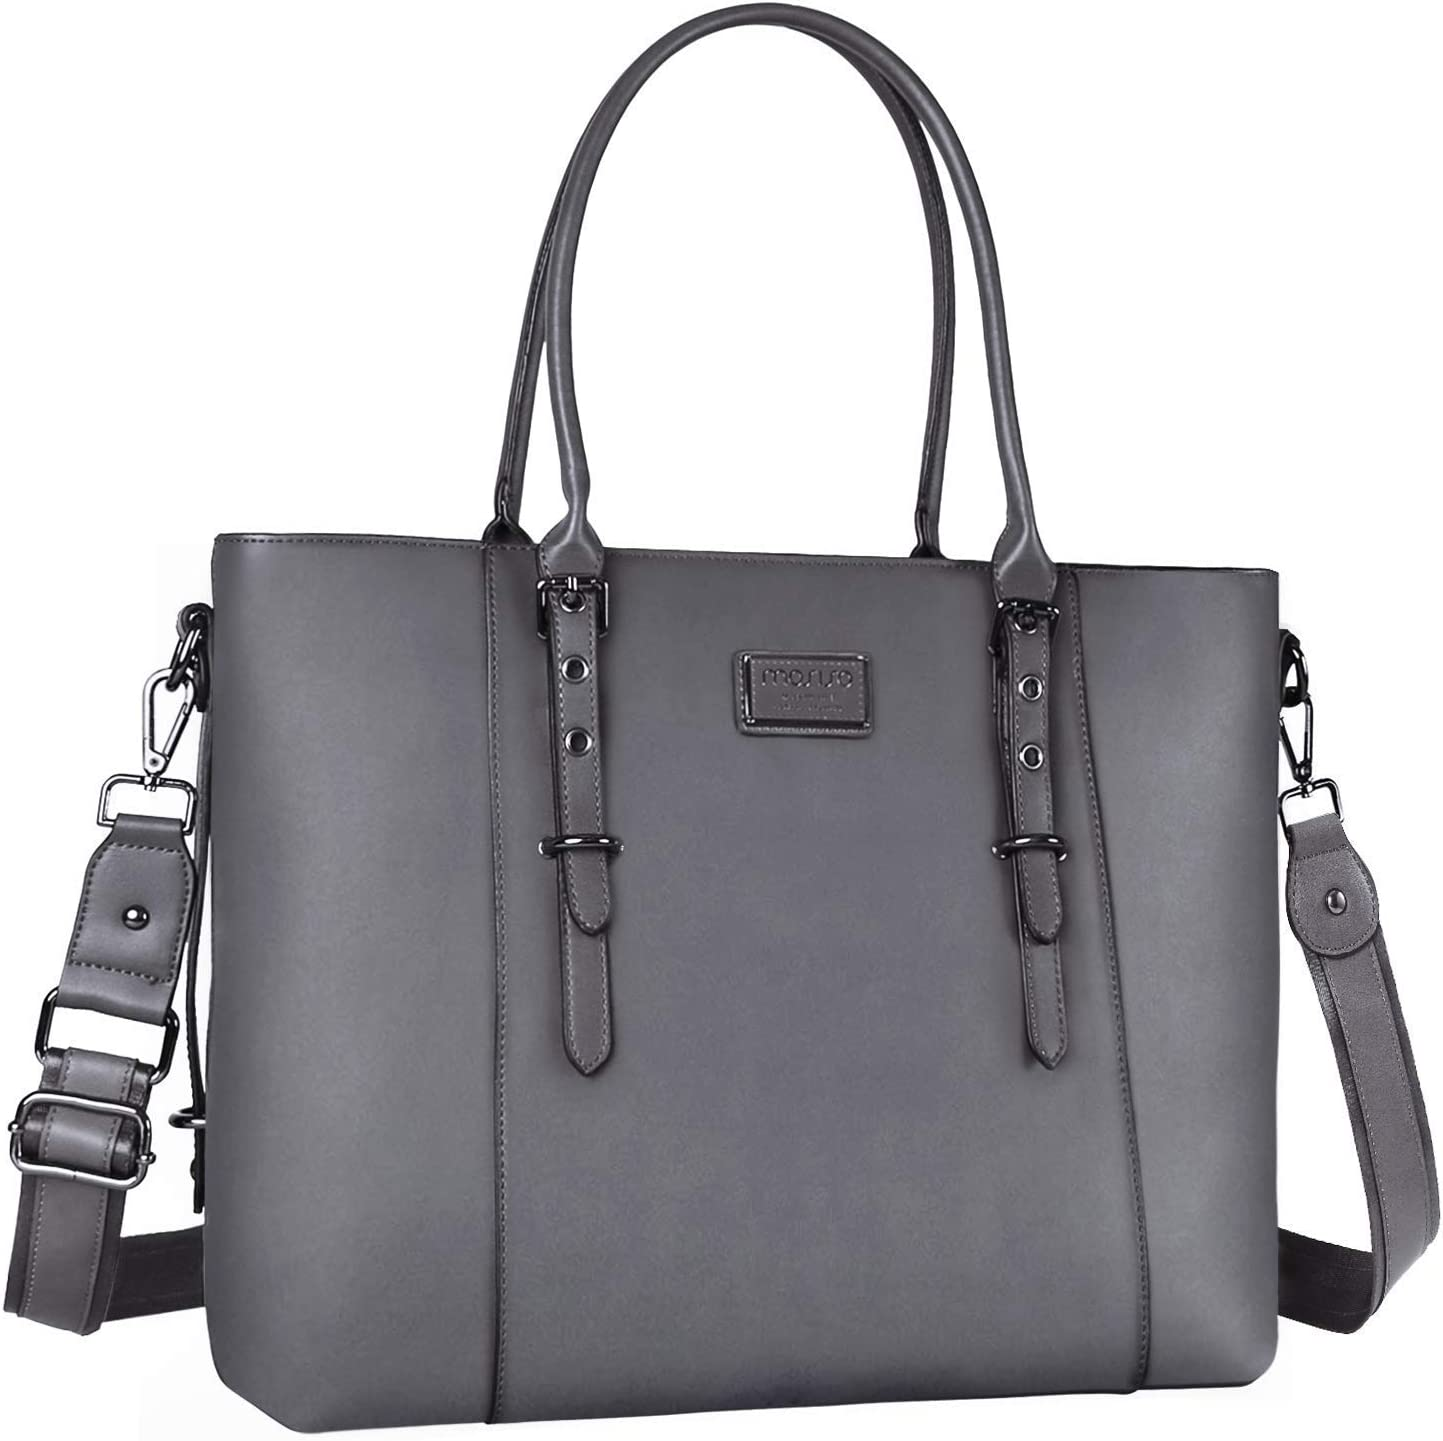 MOSISO PU Leather Laptop Tote Bag for Women (Up to 17.3 inch), Gray